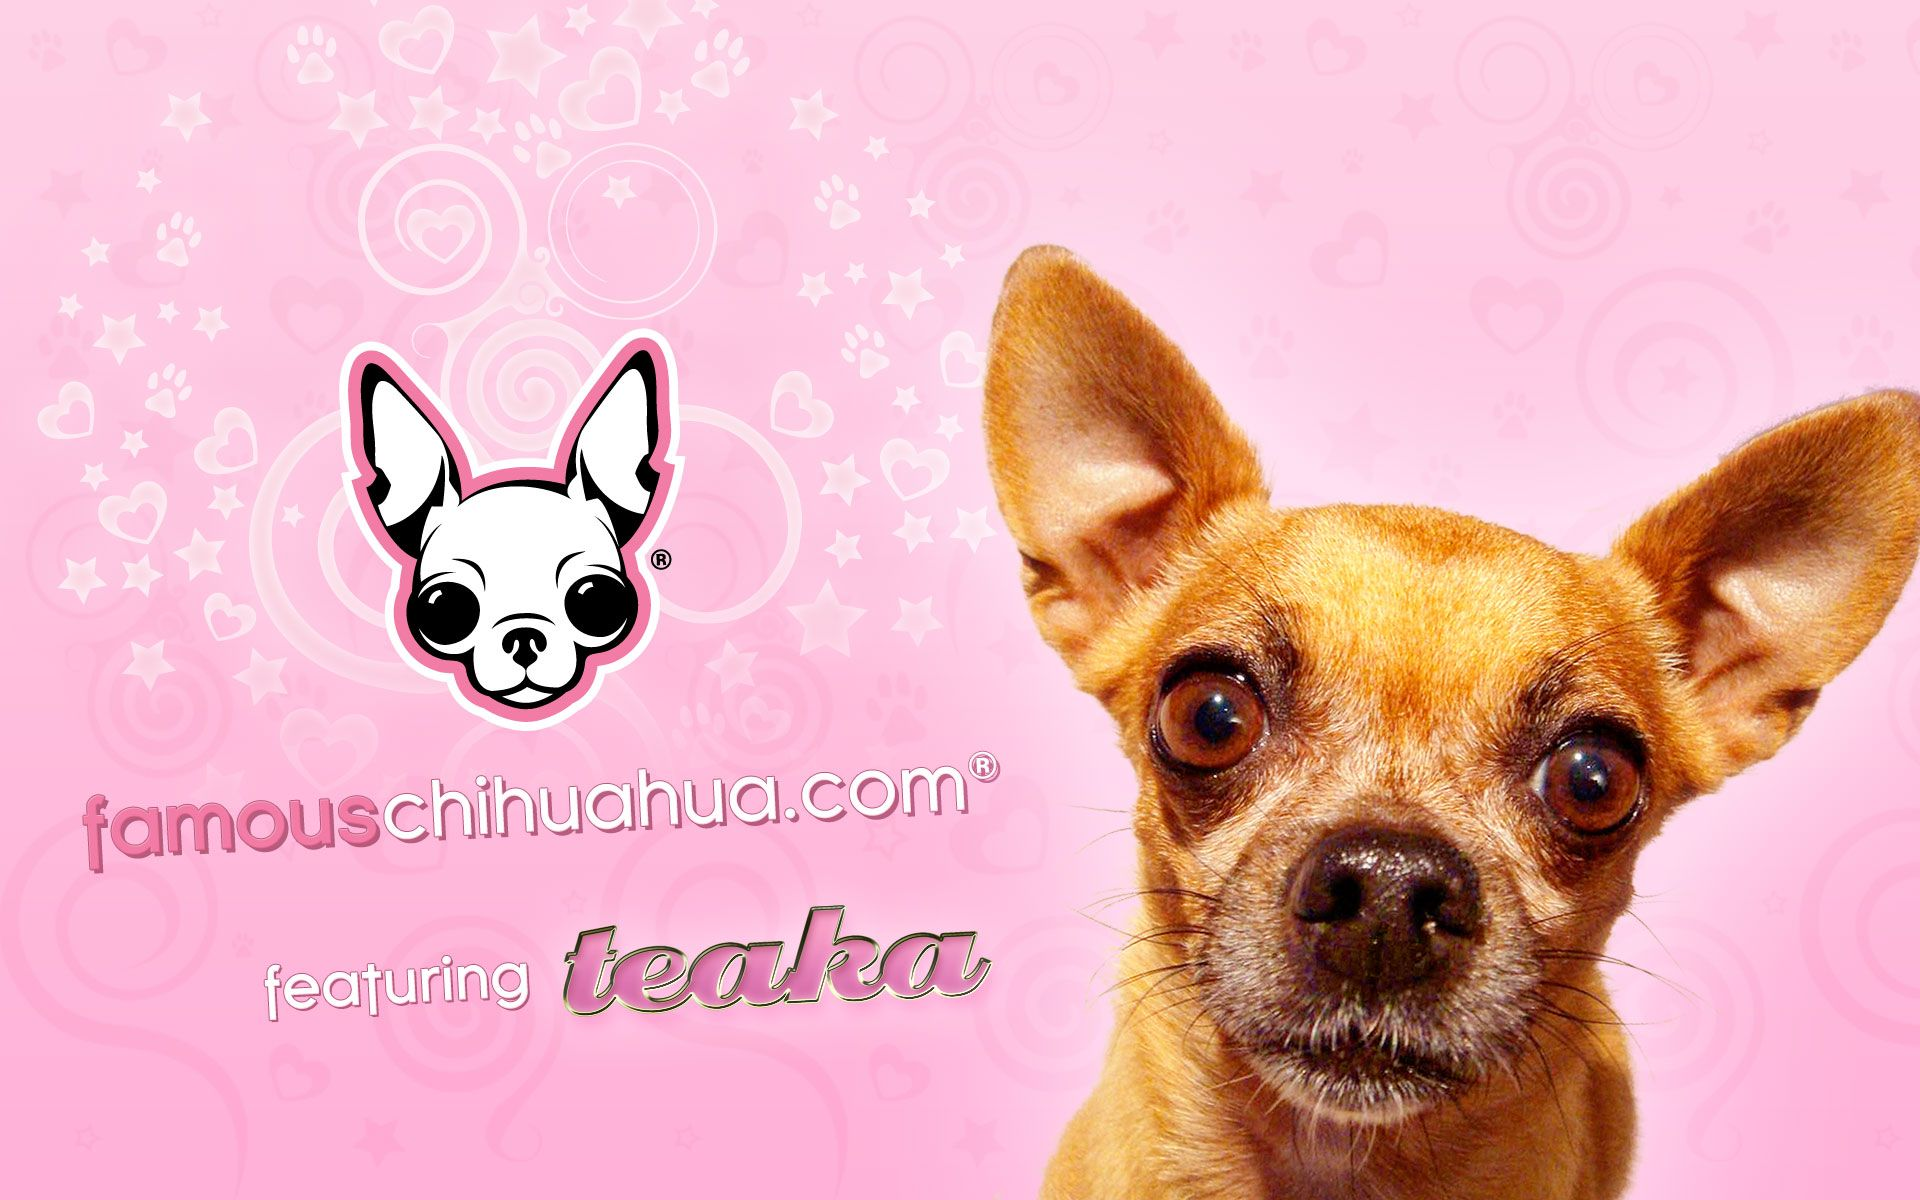 download free famous chihuahua wallpapers